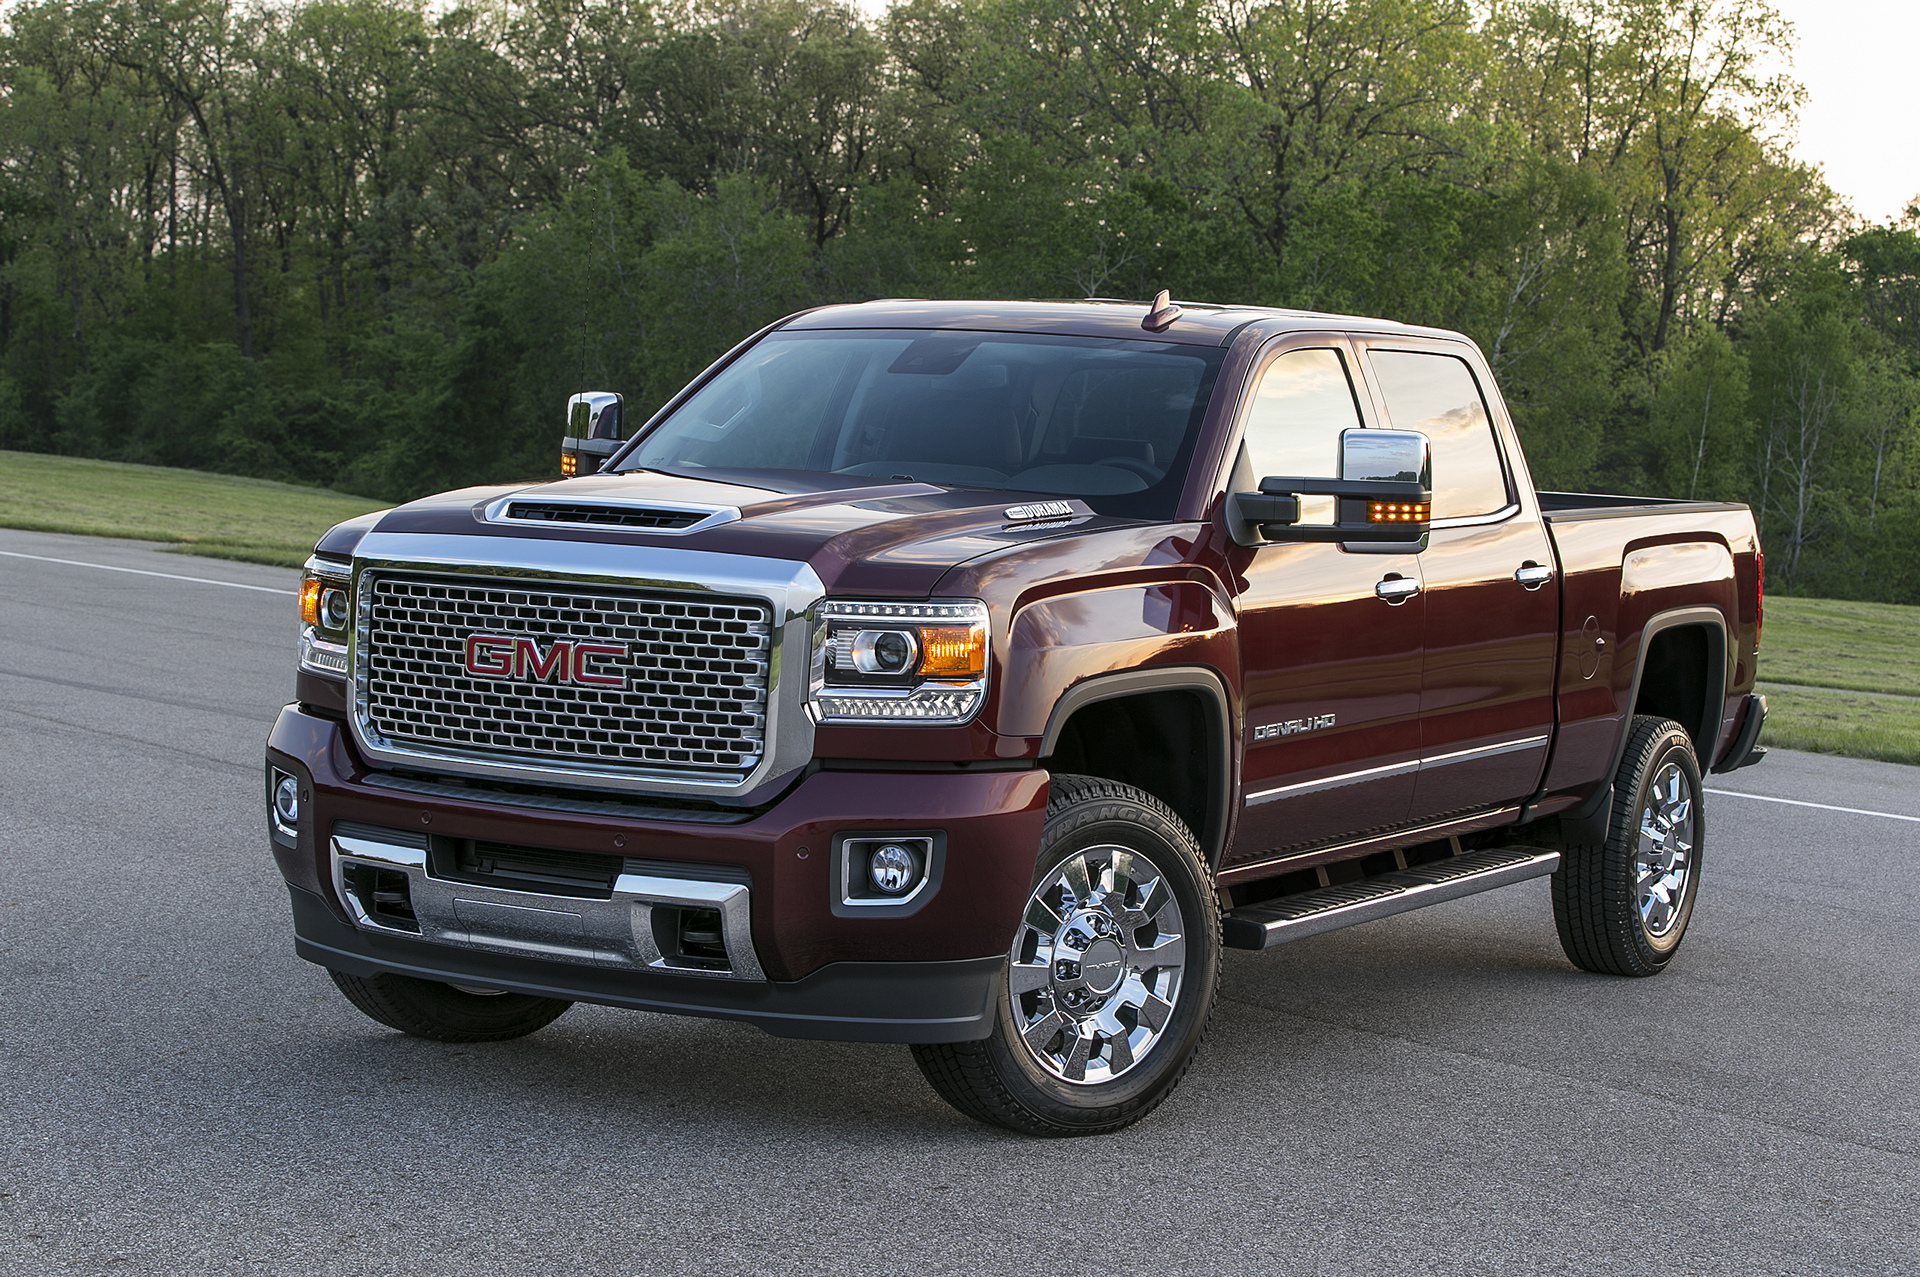 First Photos Of The 2017 Sierra Denali 2500hd on 1966 chevy truck green